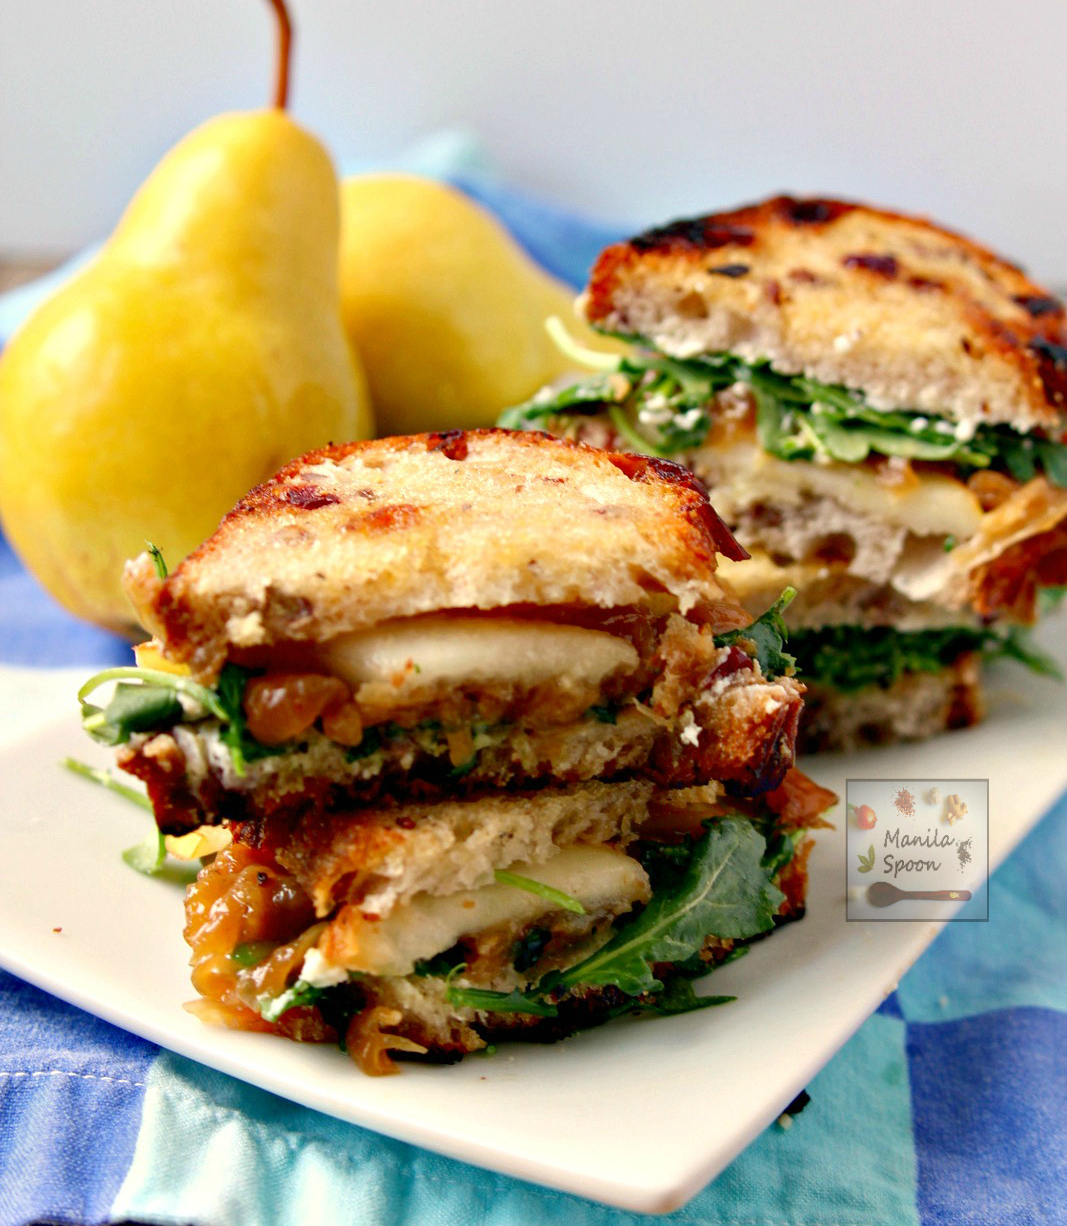 Pear, Honey, Cheese and Caramelized Onion Sandwiches